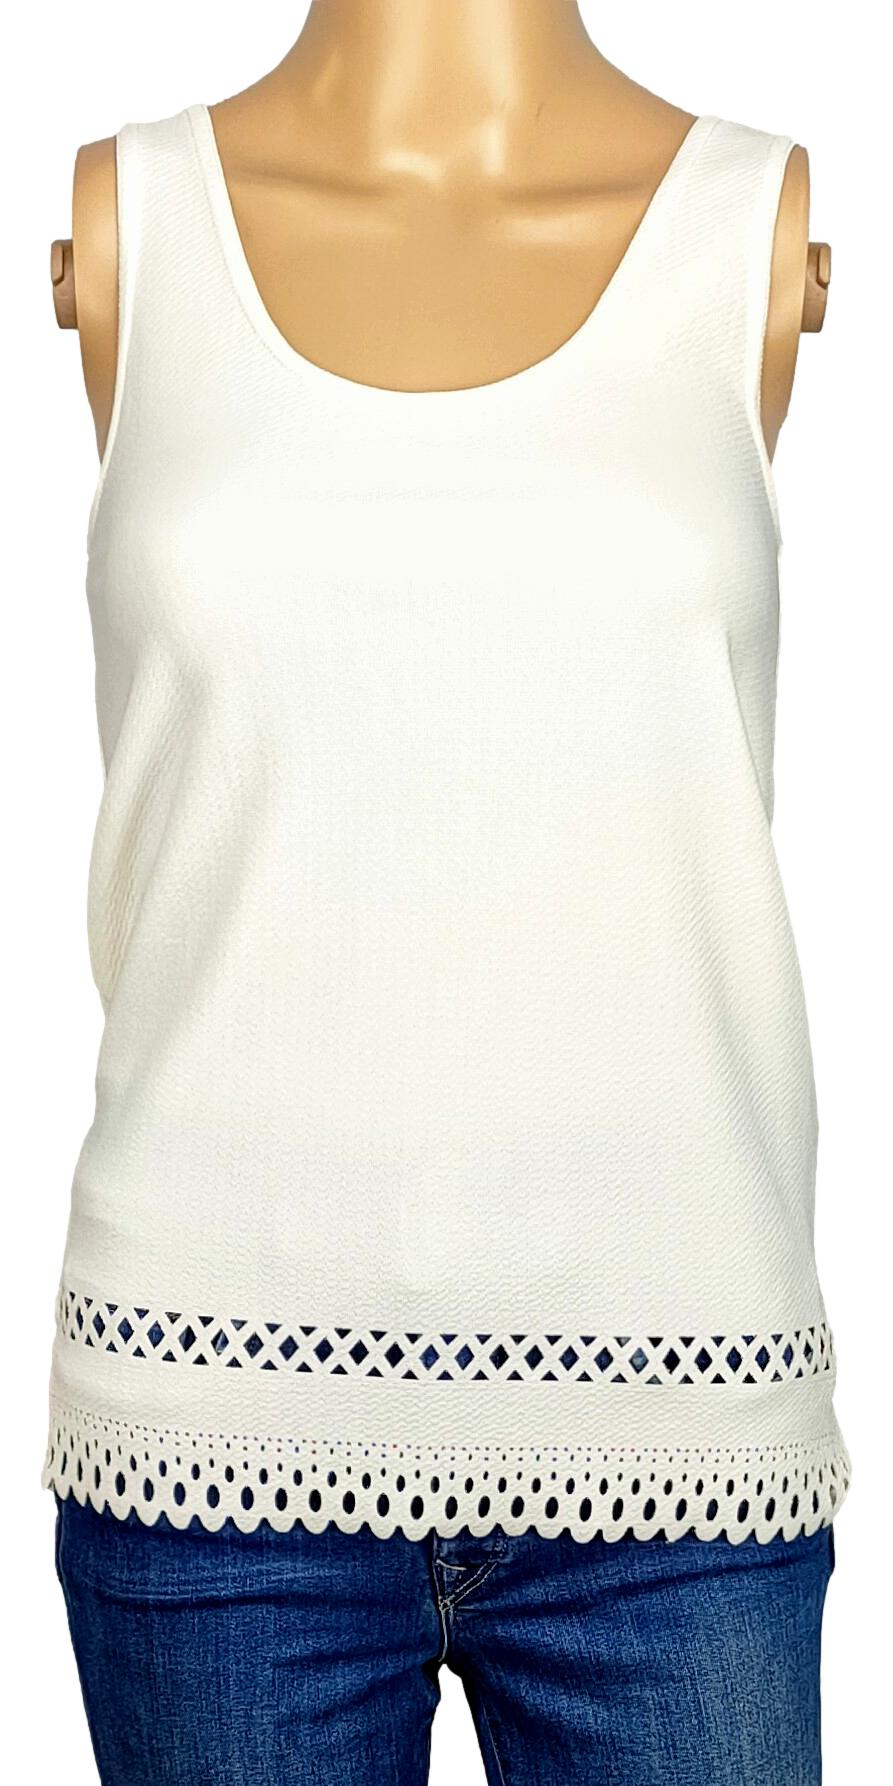 Top MIM - Taille 32